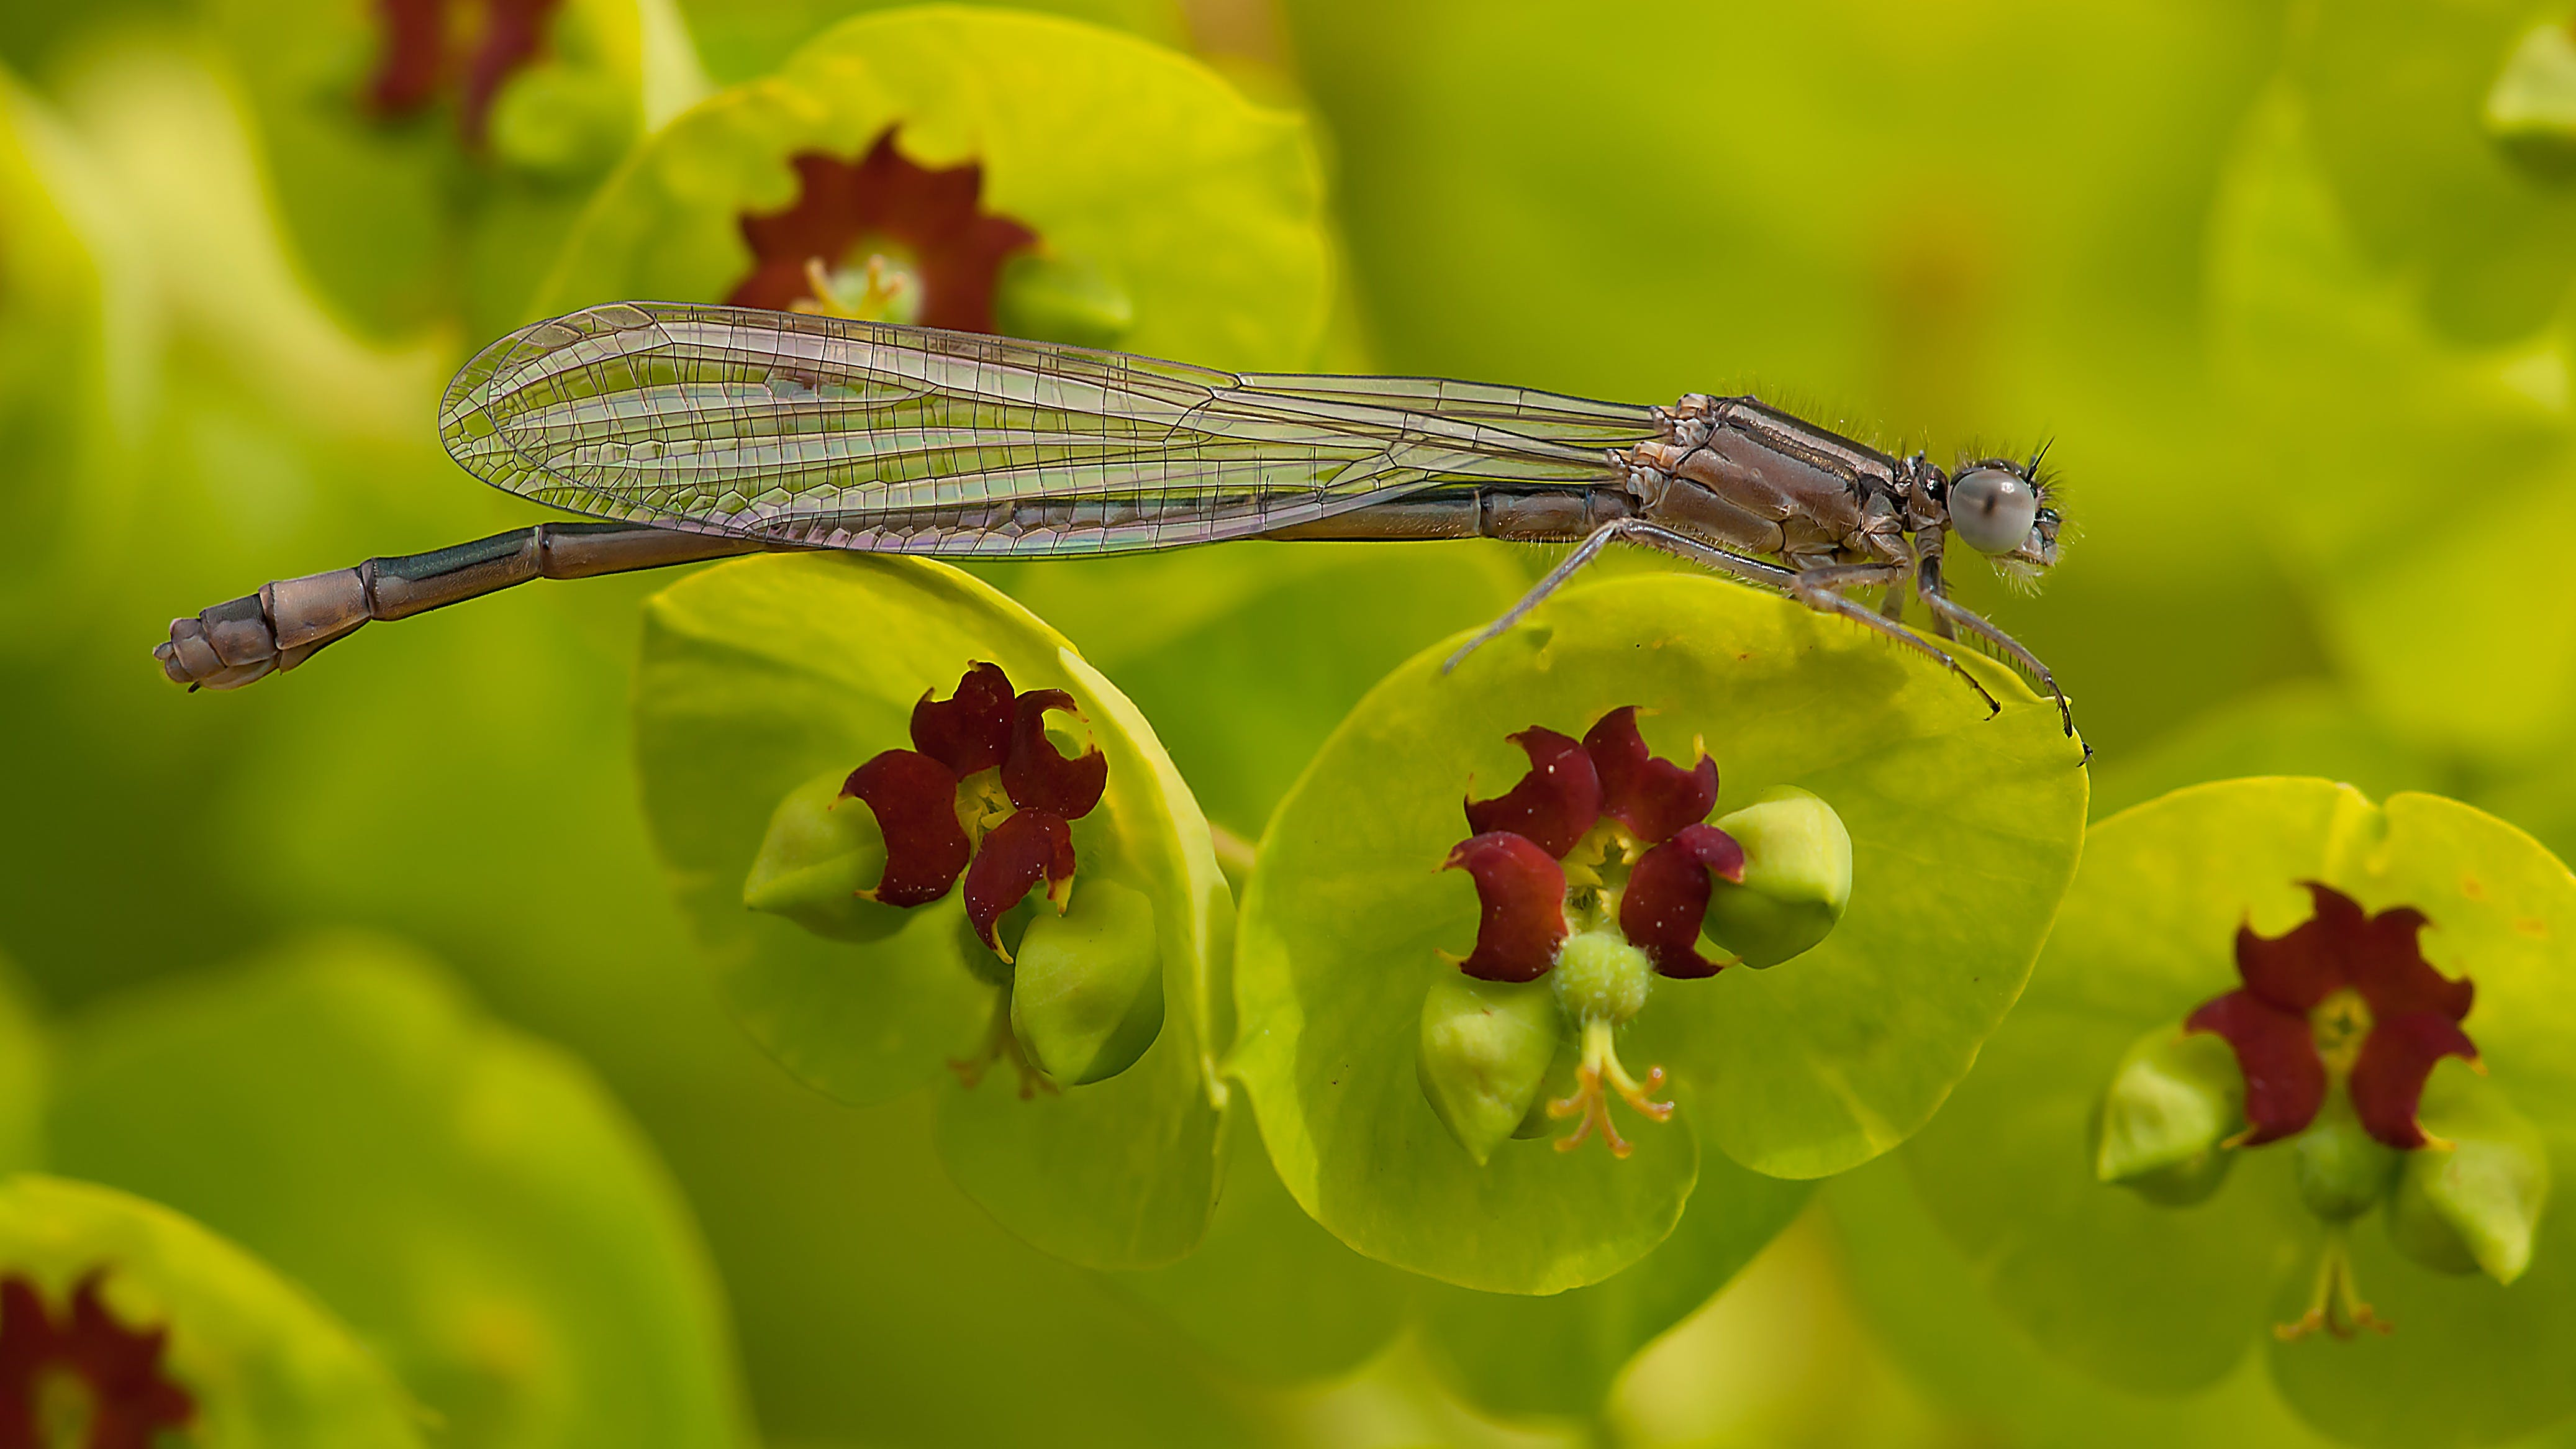 Gray Dragonfly on Green and Maroon Leaf in Tilt Shift Lens